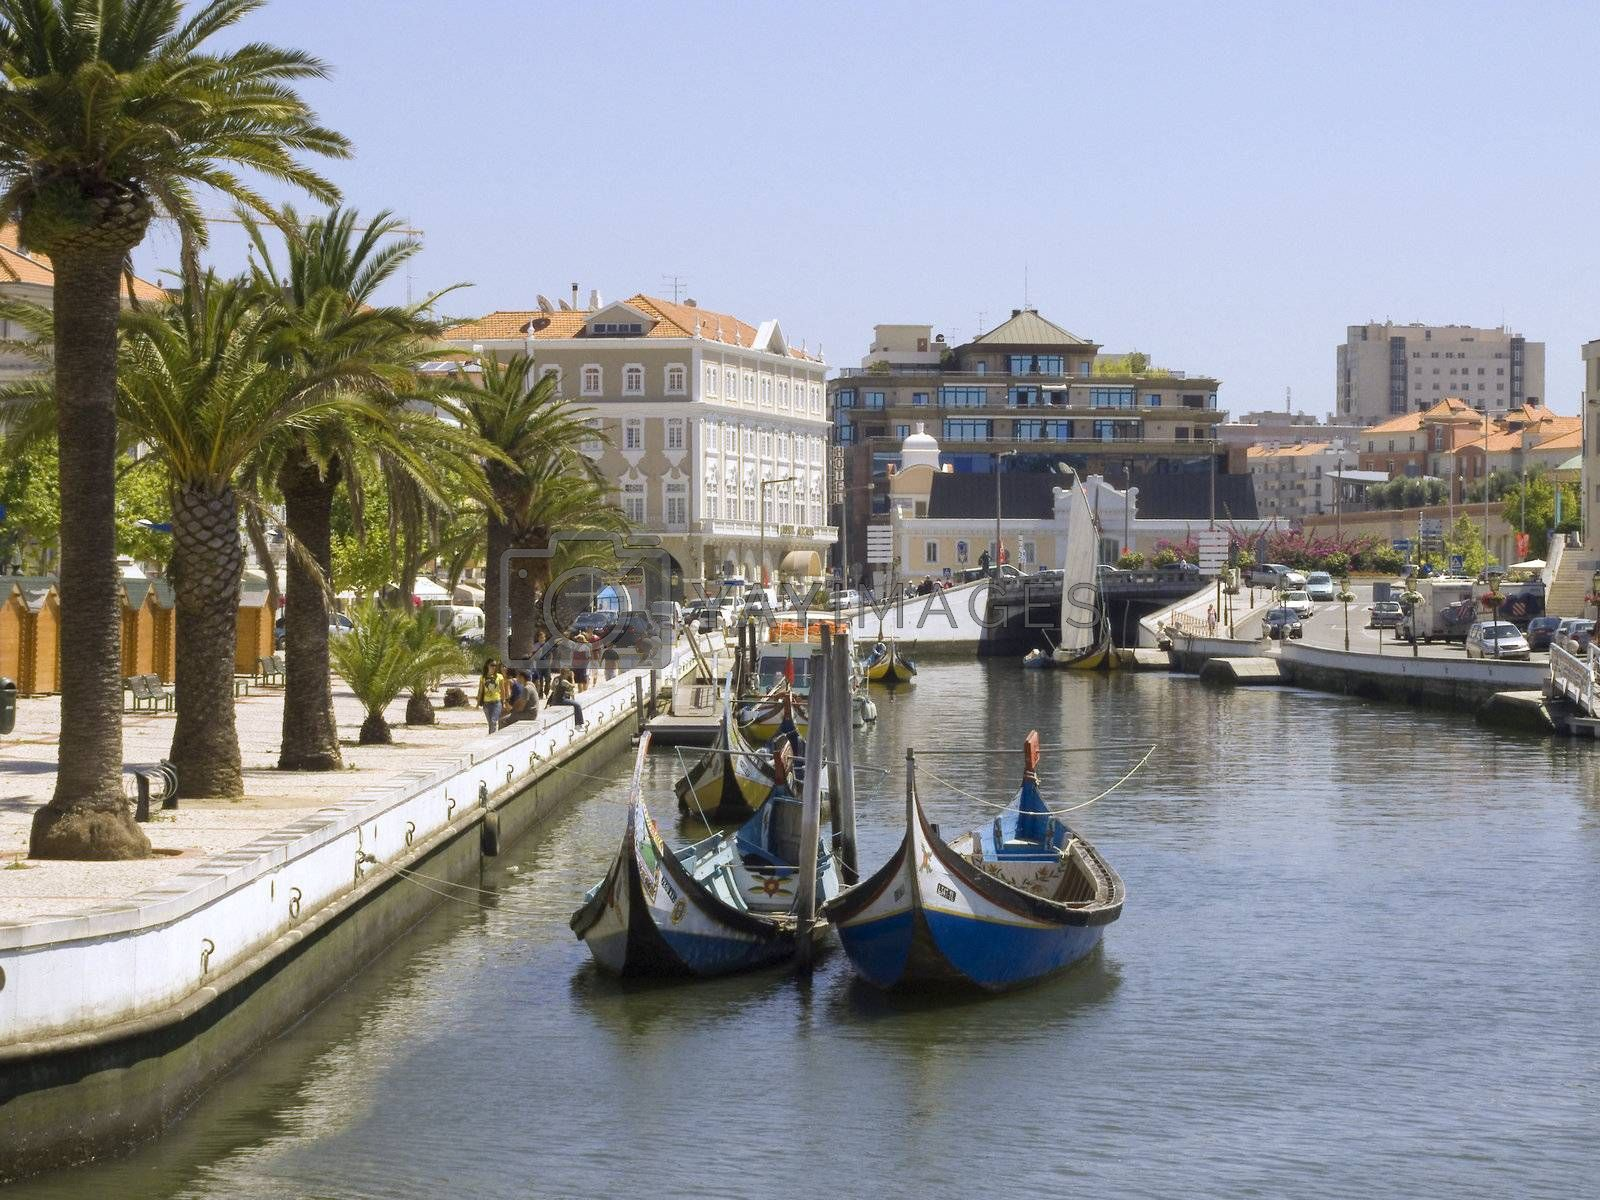 Photo made in Portugal, Aveiro by PauloResende